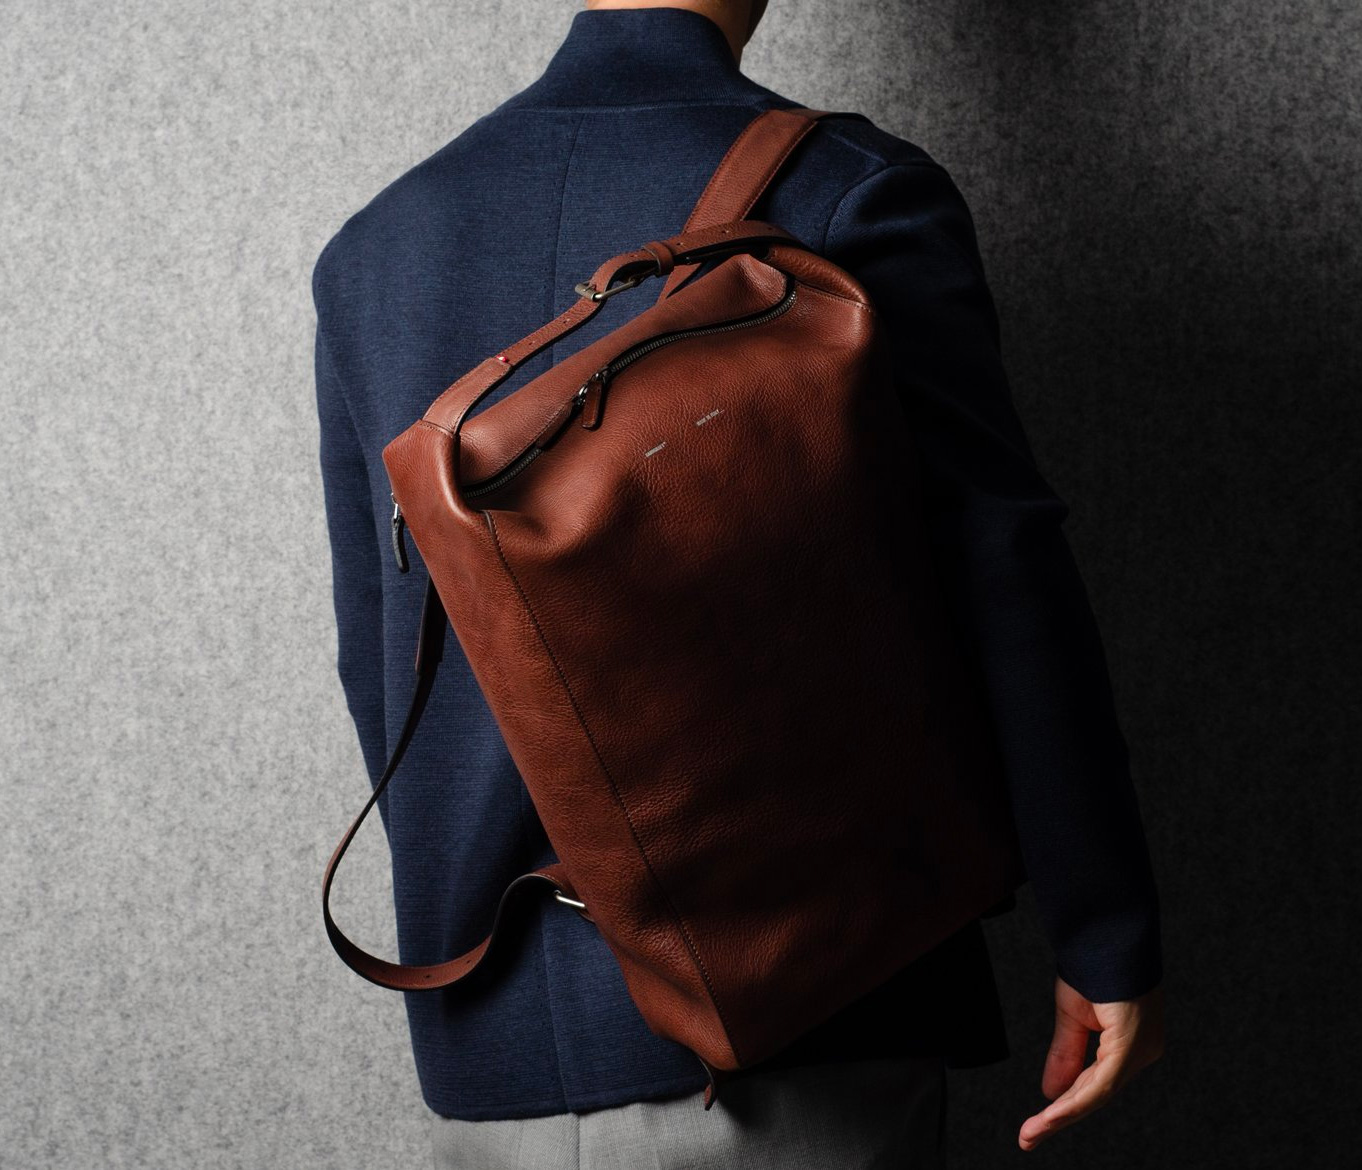 Hardgraft's Belted Backpack Looks Good in Leather at werd.com